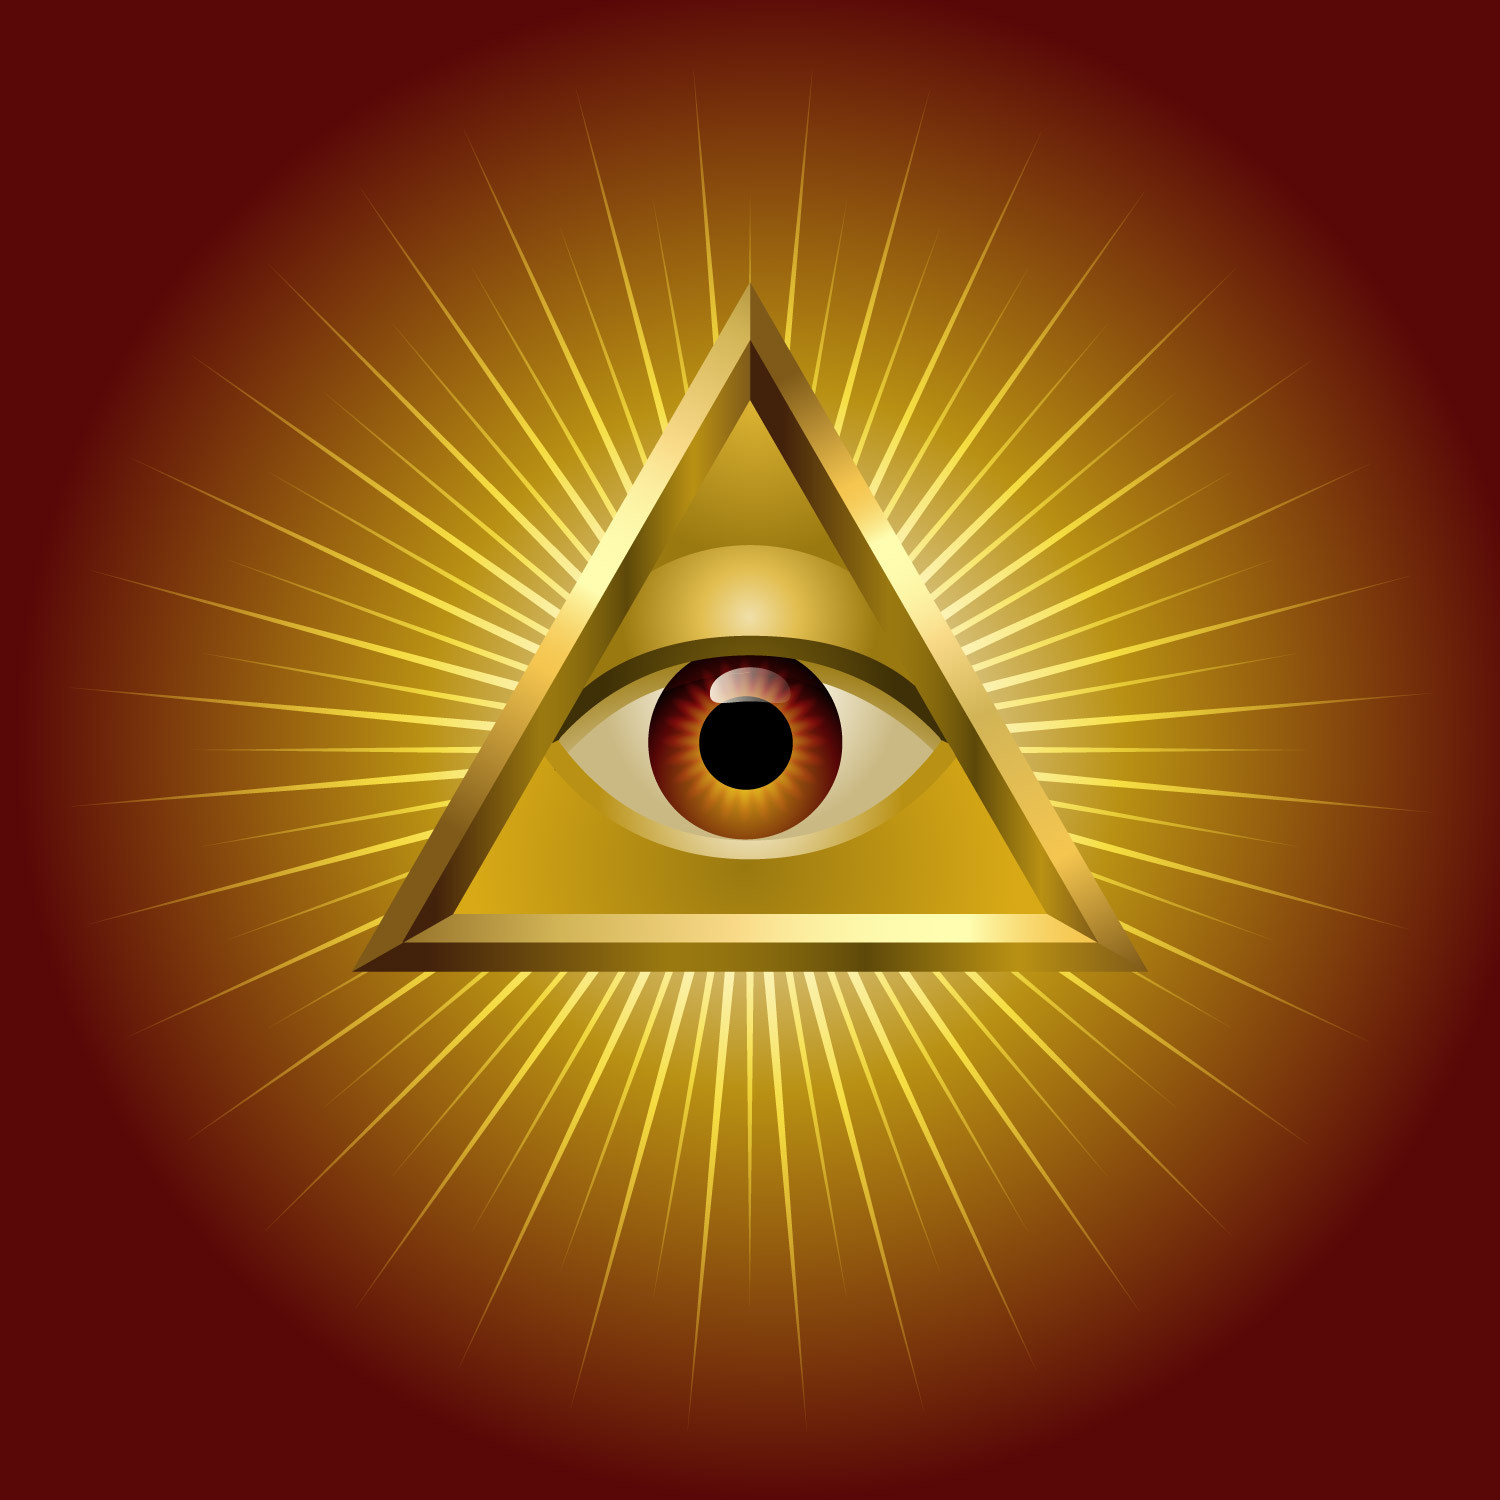 All On The Illuminati: 7 Theories About The Illuminati And The New World Order